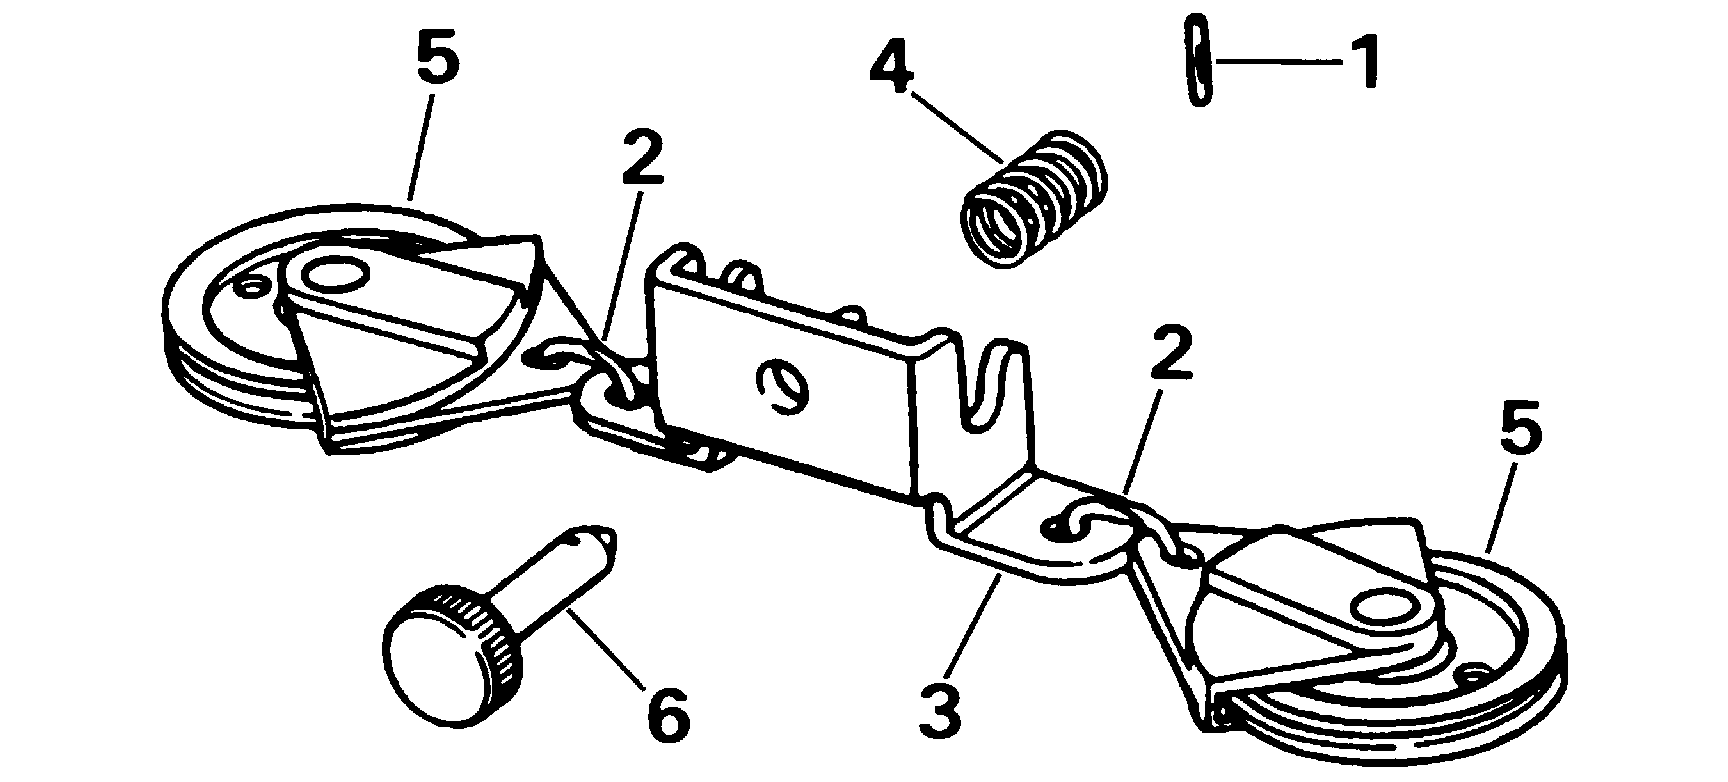 Cable And Pulley Steering For Boats